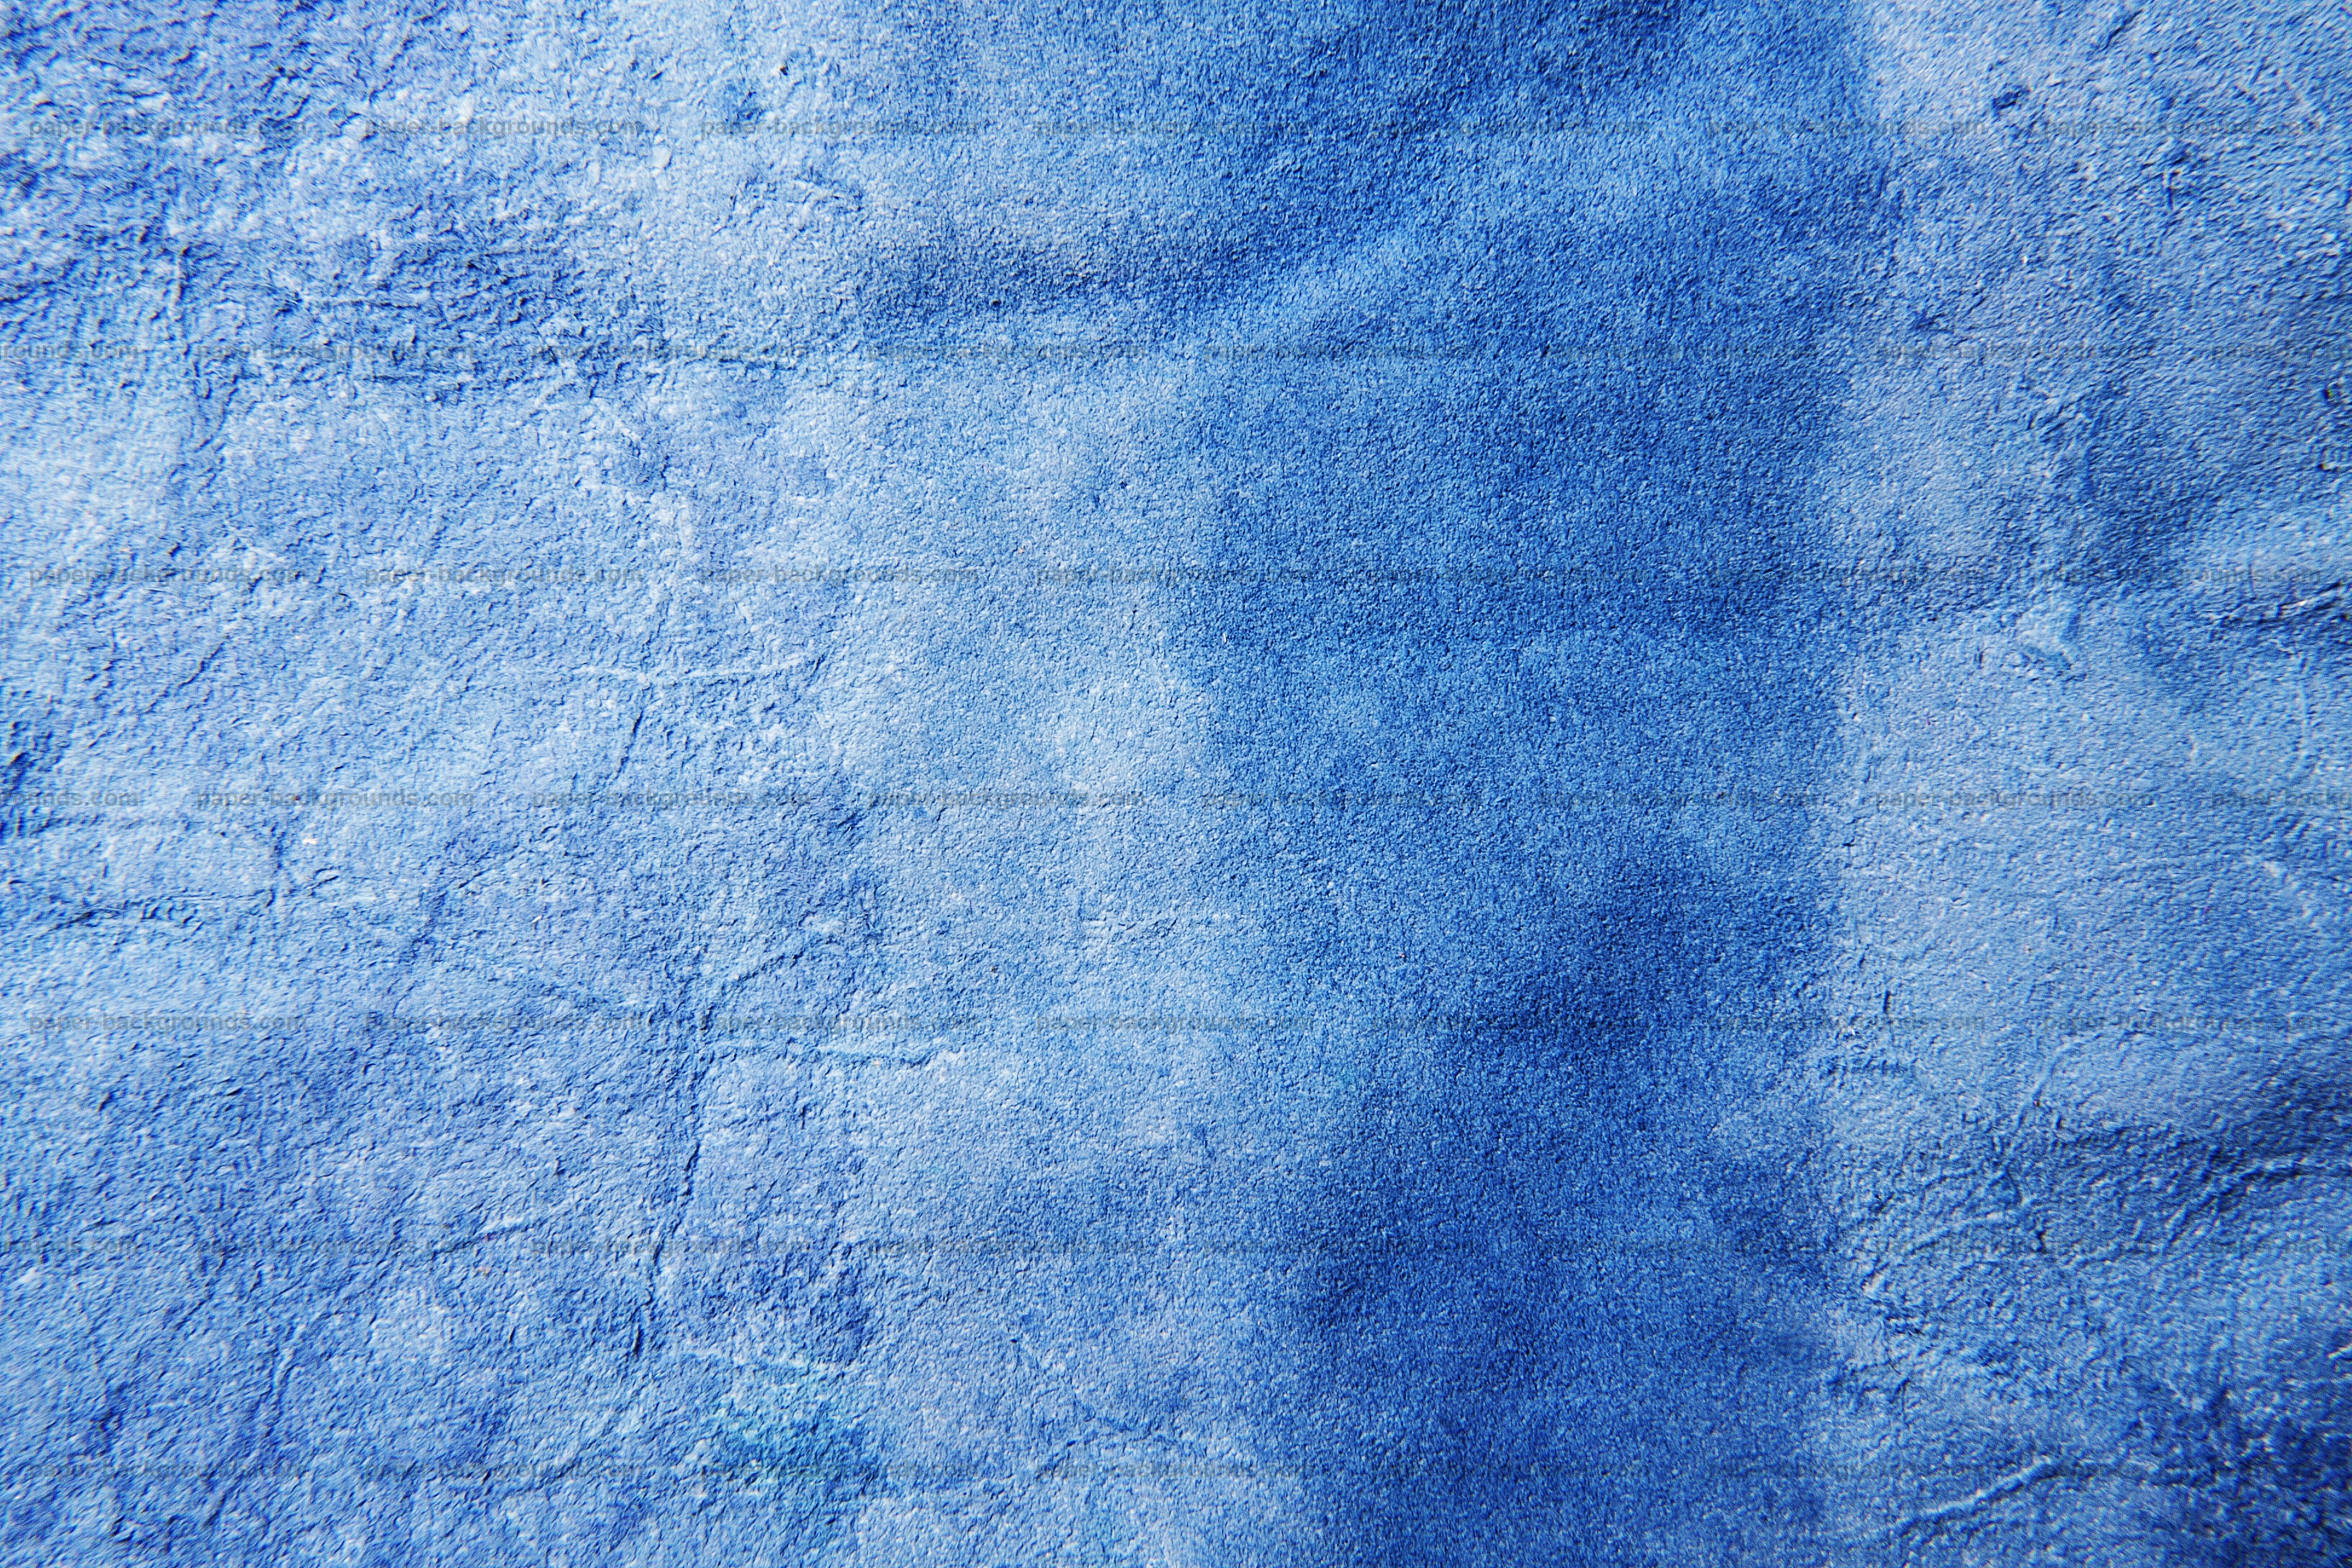 Grunge Blue Soft Leather Texture High Resolution Paper Backgrounds 3888x2592